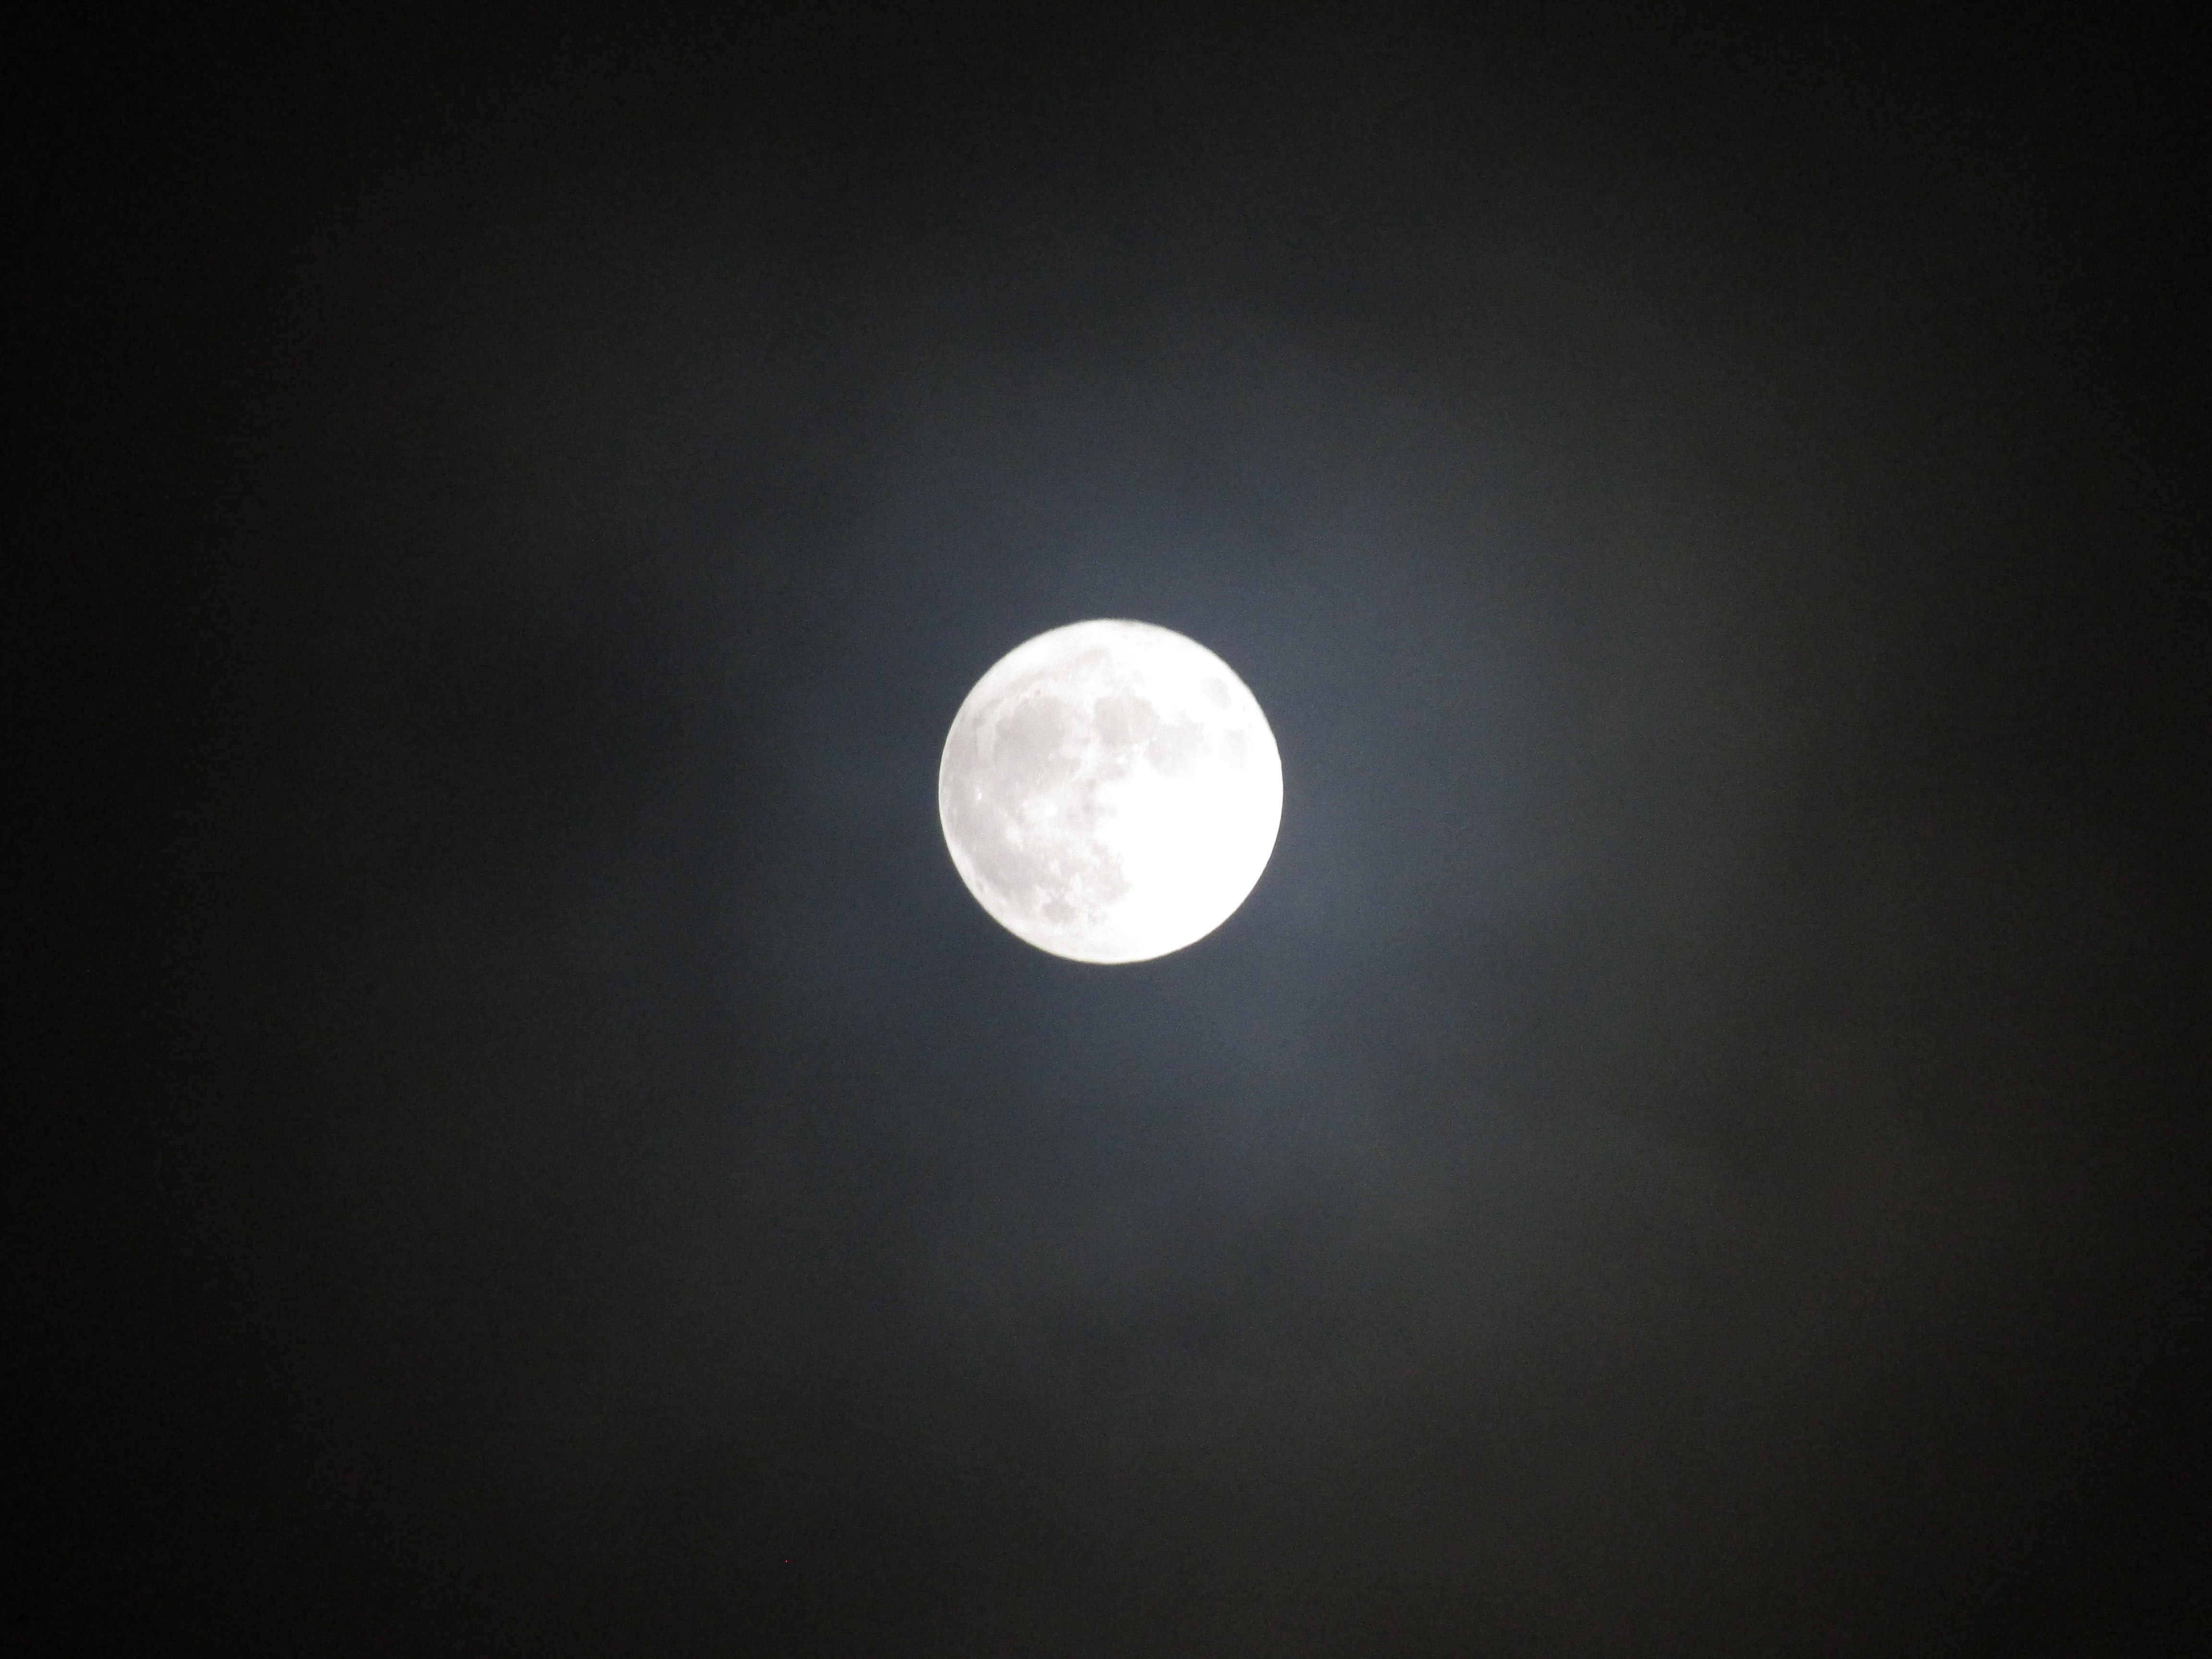 The full moon on the night sky at Tipton, England